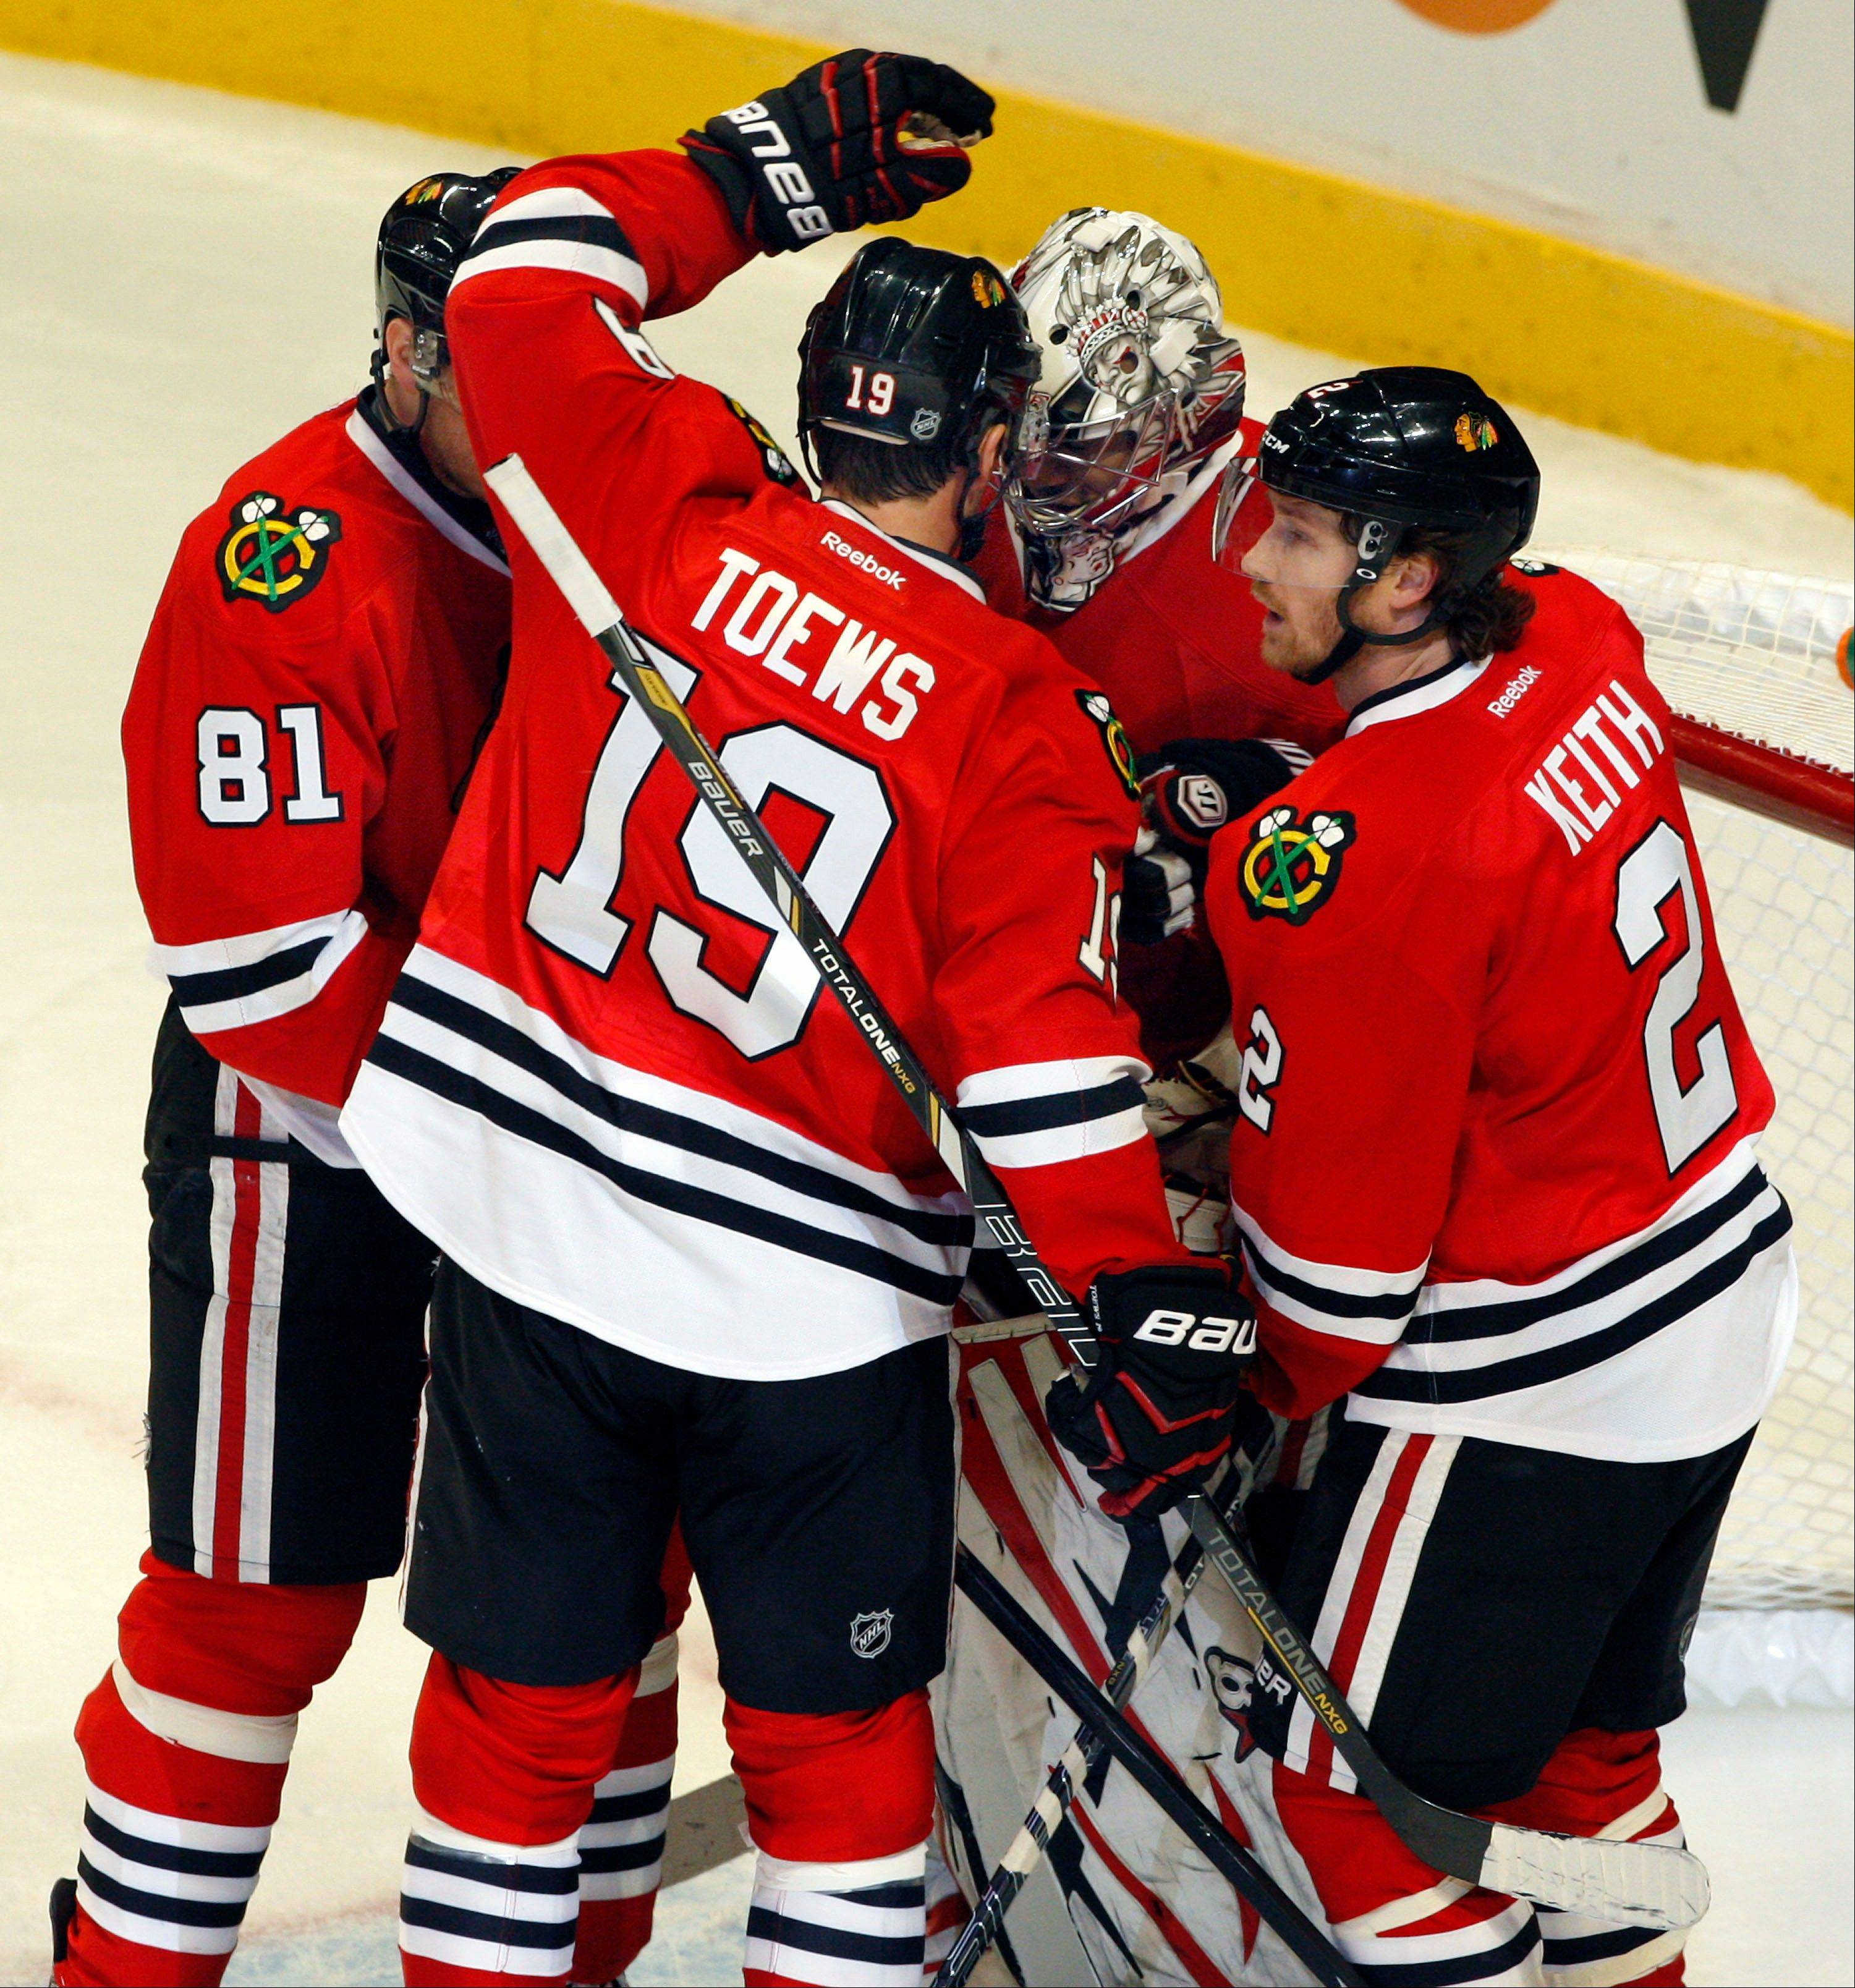 Marian Hossa (81), Jonathan Toews (19) and Duncan Keith (2) congratulate goalie Ray Emery after the Blackhawks' 3-2 victory Sunday over the Kings.